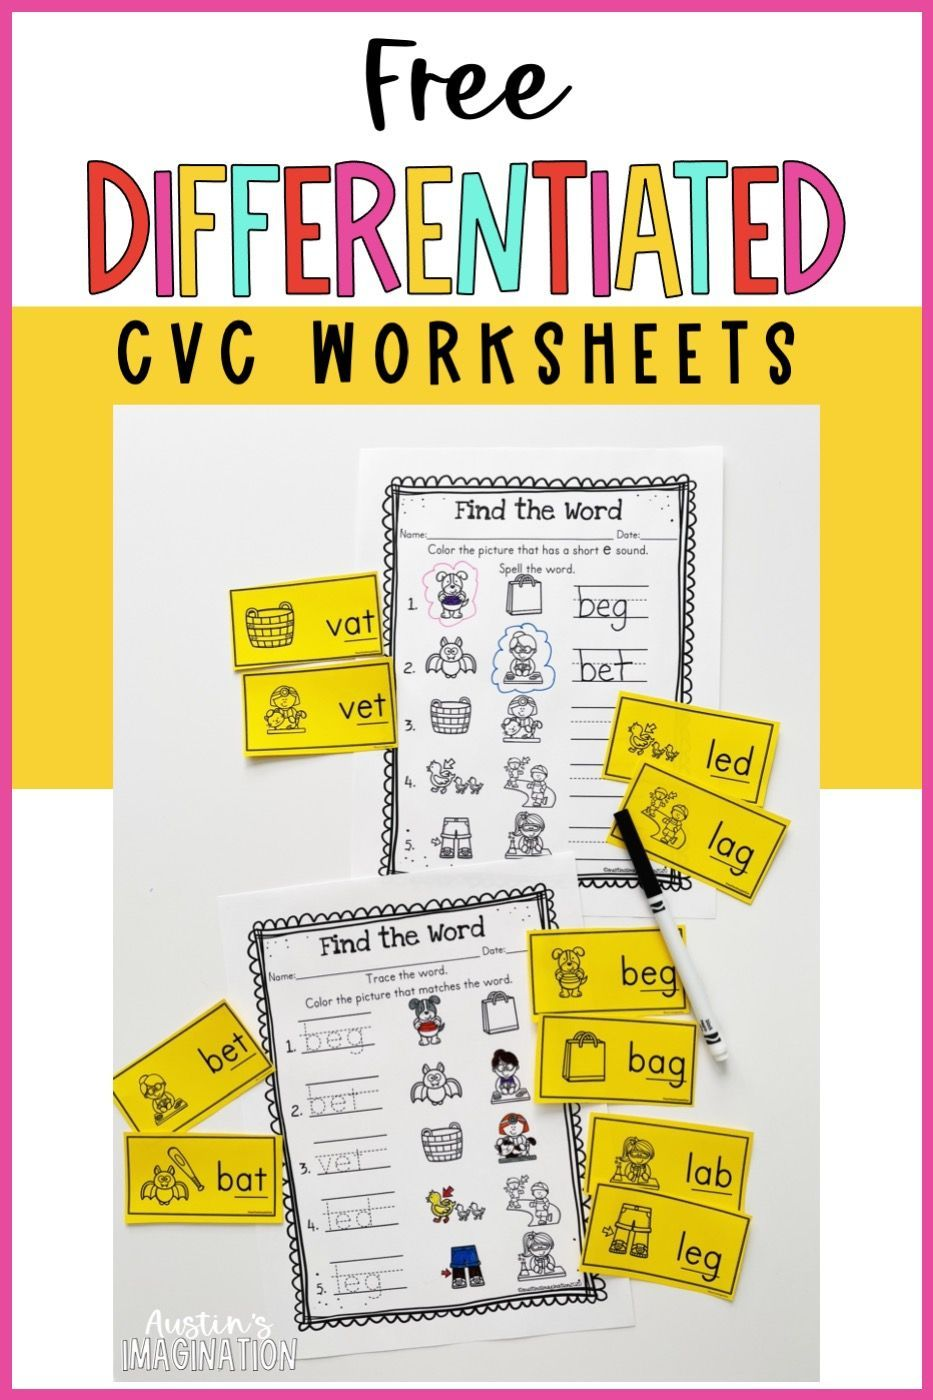 Free Differentiated Cvc Worksheets And Teaching Mistakes To Avoid When Teaching Cvc Words In 2021 Cvc Words Writing Cvc Words Cvc Word Families [ 1400 x 933 Pixel ]